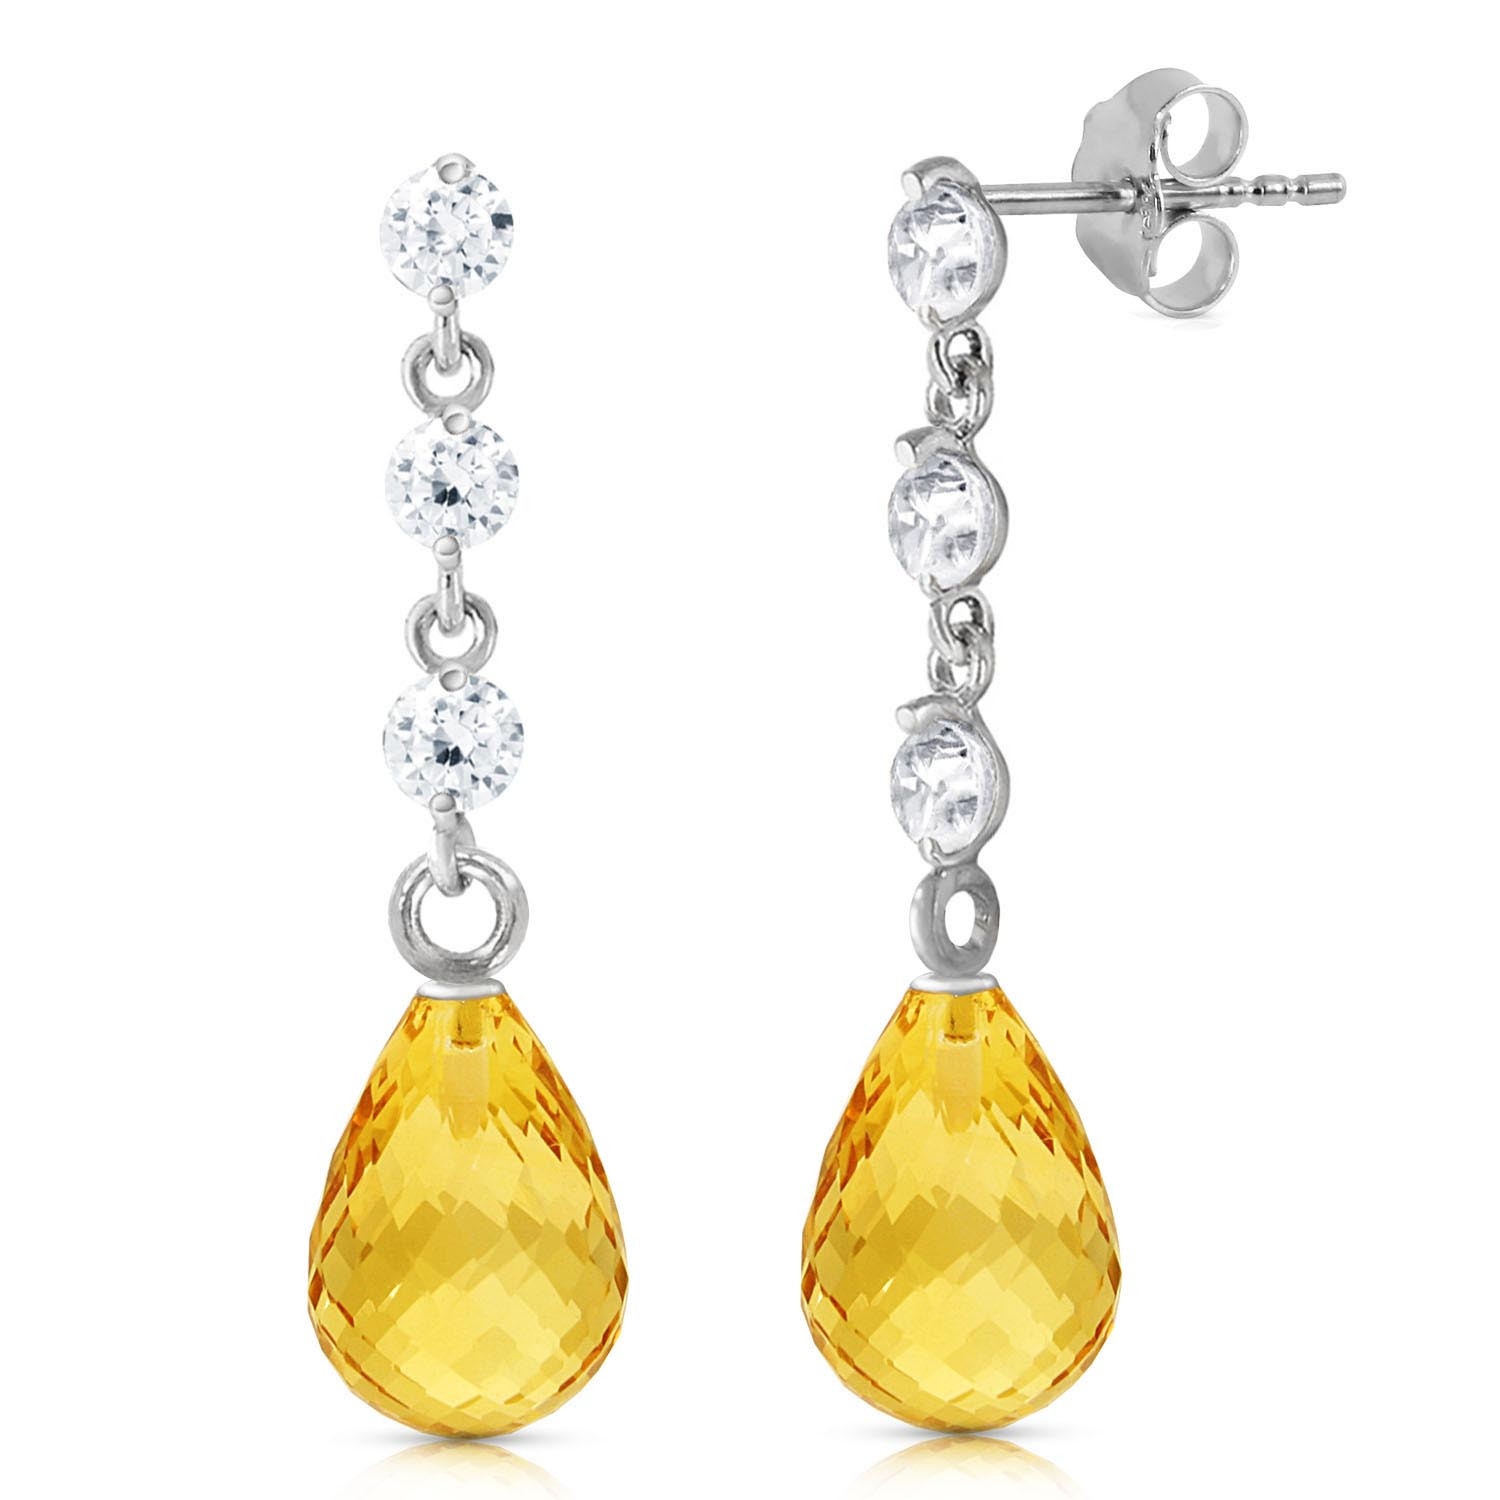 91a427cae Citrine & Diamond Chain Droplet Earrings in 9ct White Gold - 4063W ...